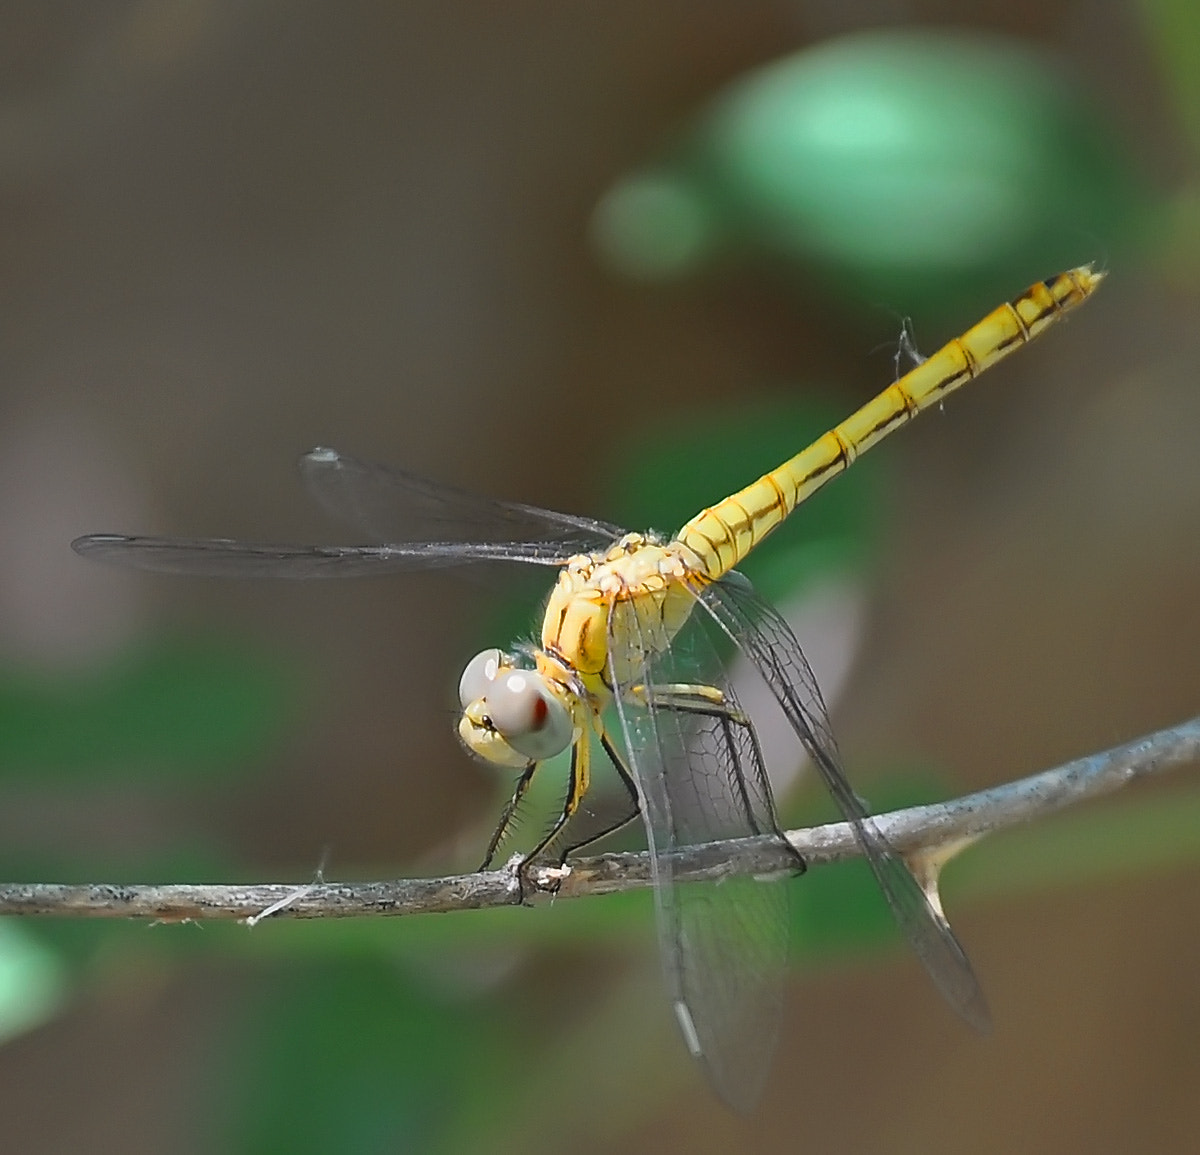 Photograph Dragonfly01 by javad afzali on 500px